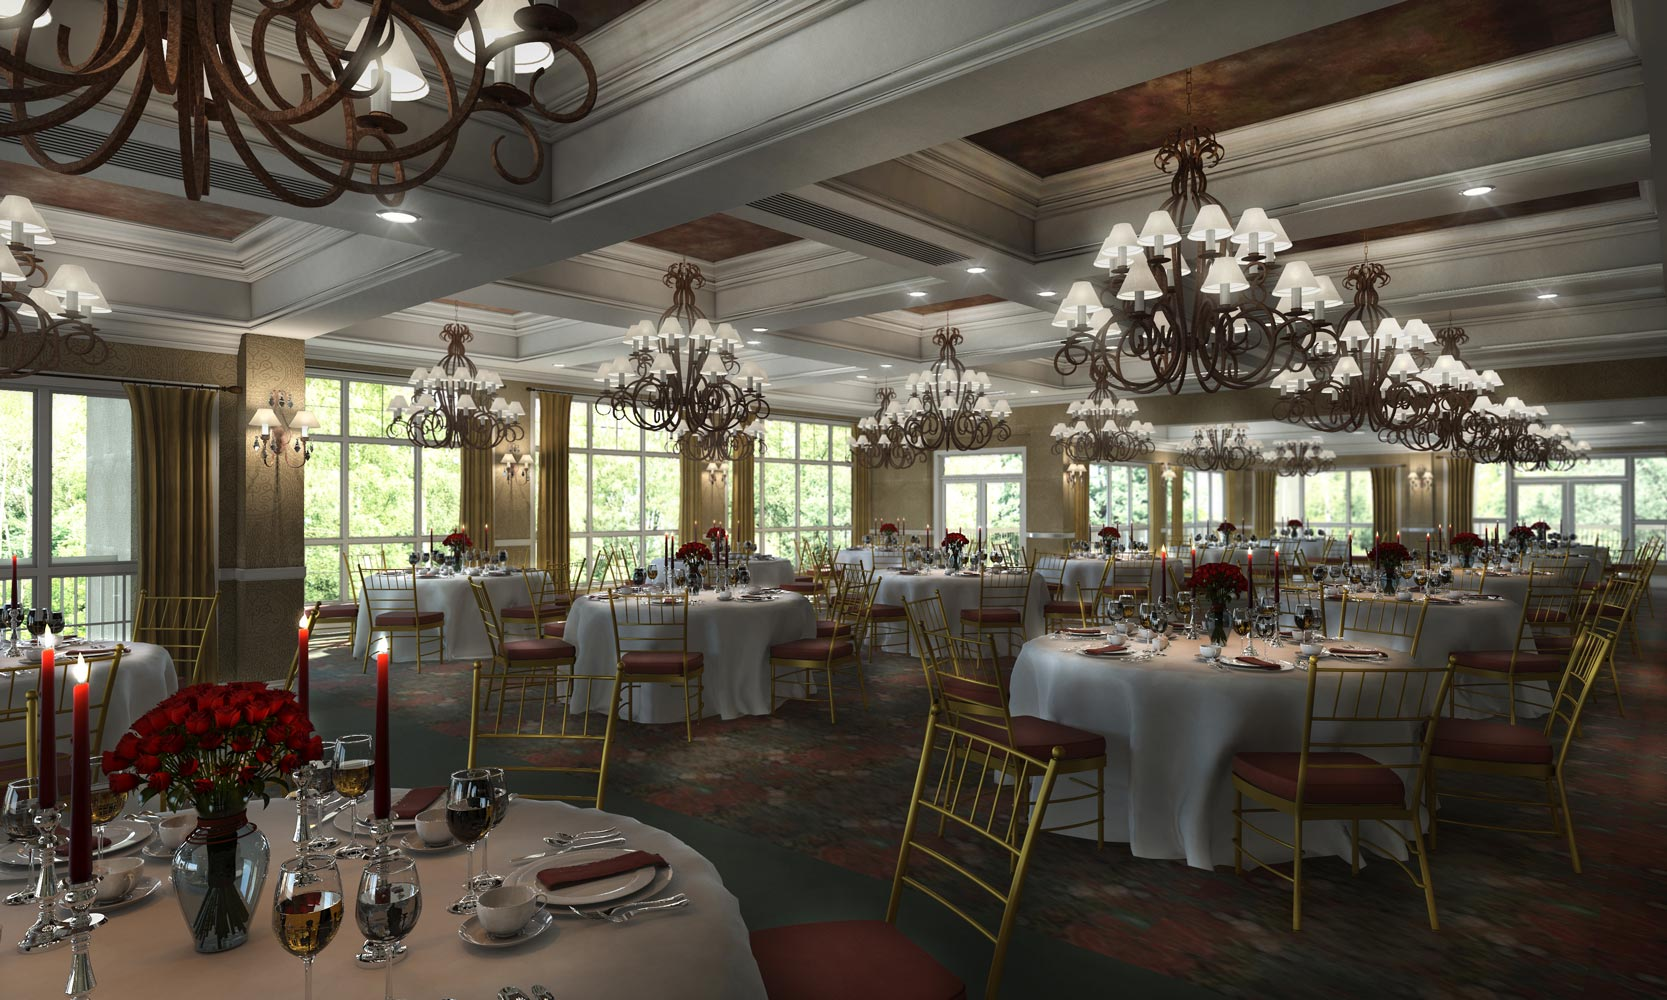 Governors Club Architectural 3d Rendering